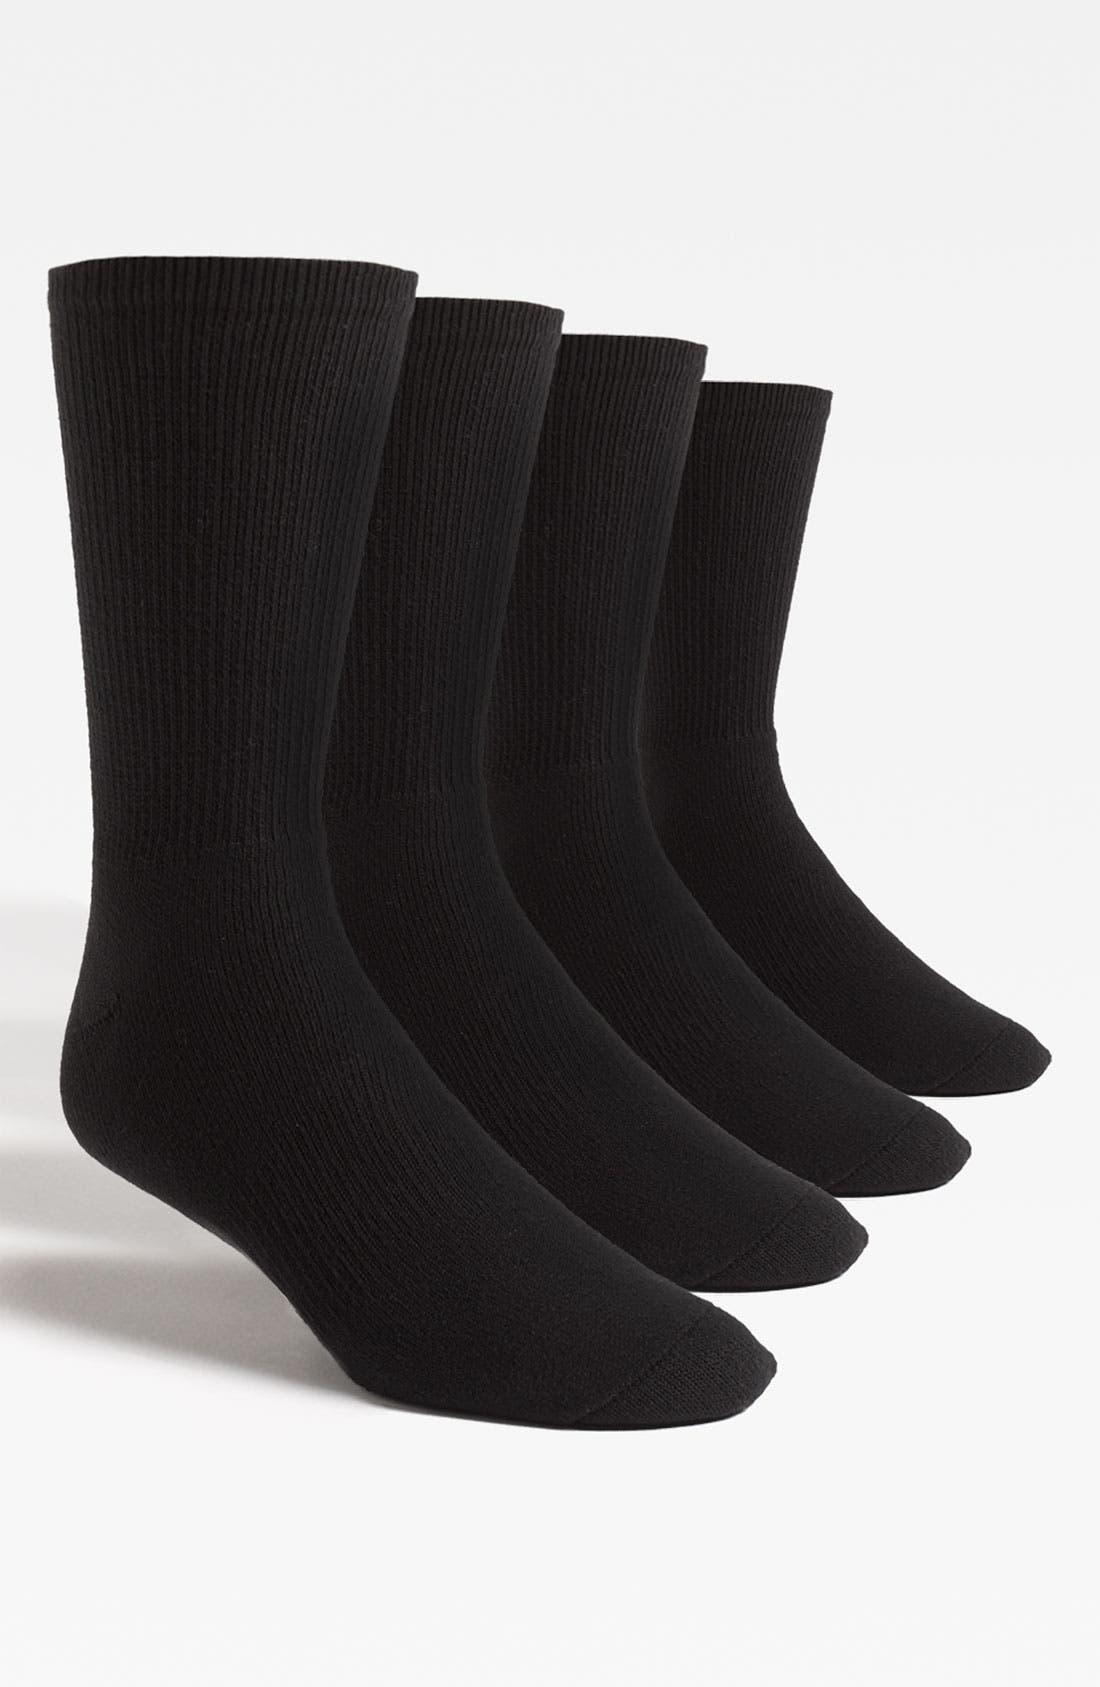 Alternate Image 1 Selected - Nordstrom Men's Shop King Size Crew Socks (4-Pack)